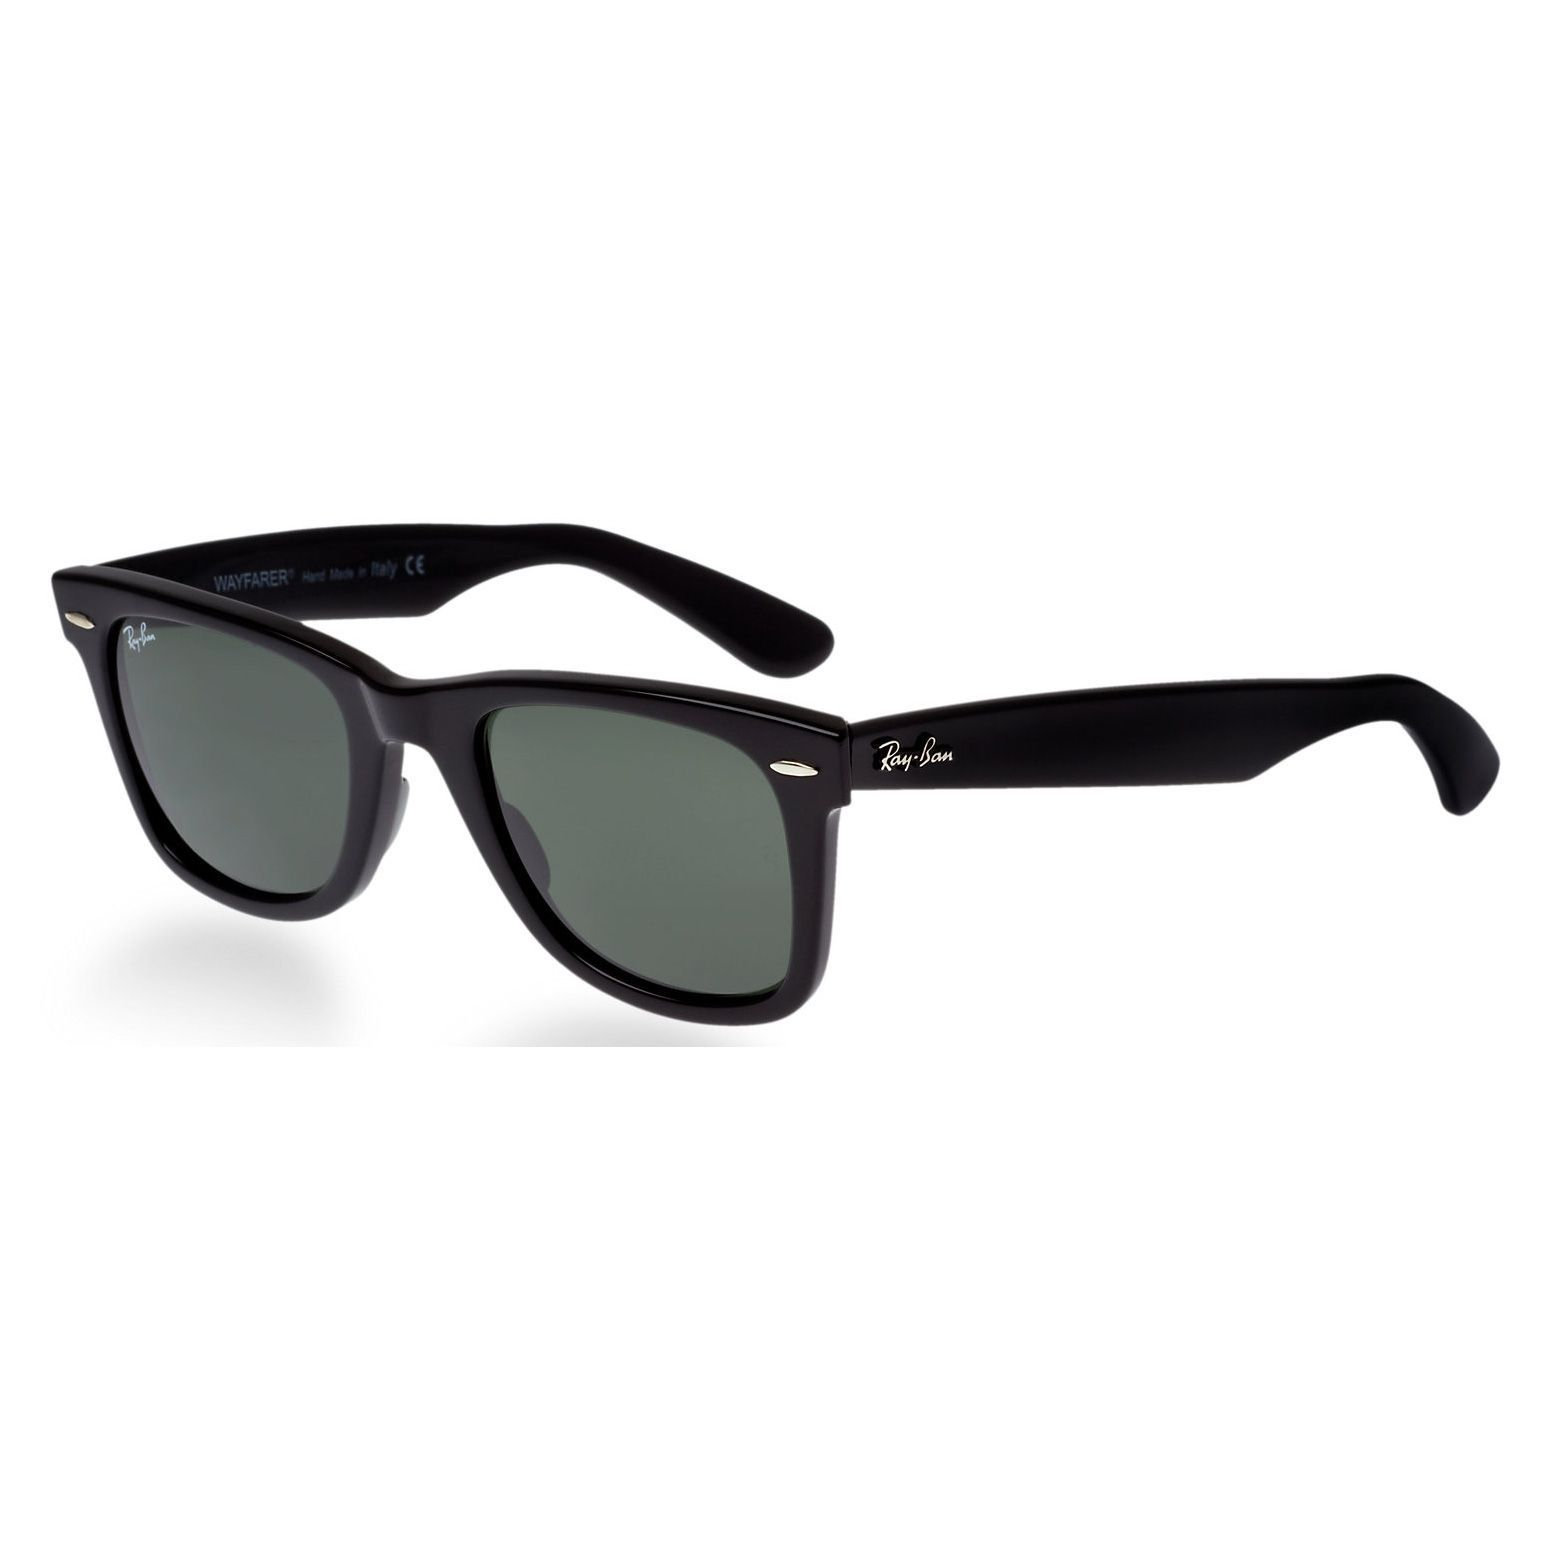 0581d15ecb Rock the old school look with this iconic pair of Ray-Ban men s original  Wayfarer